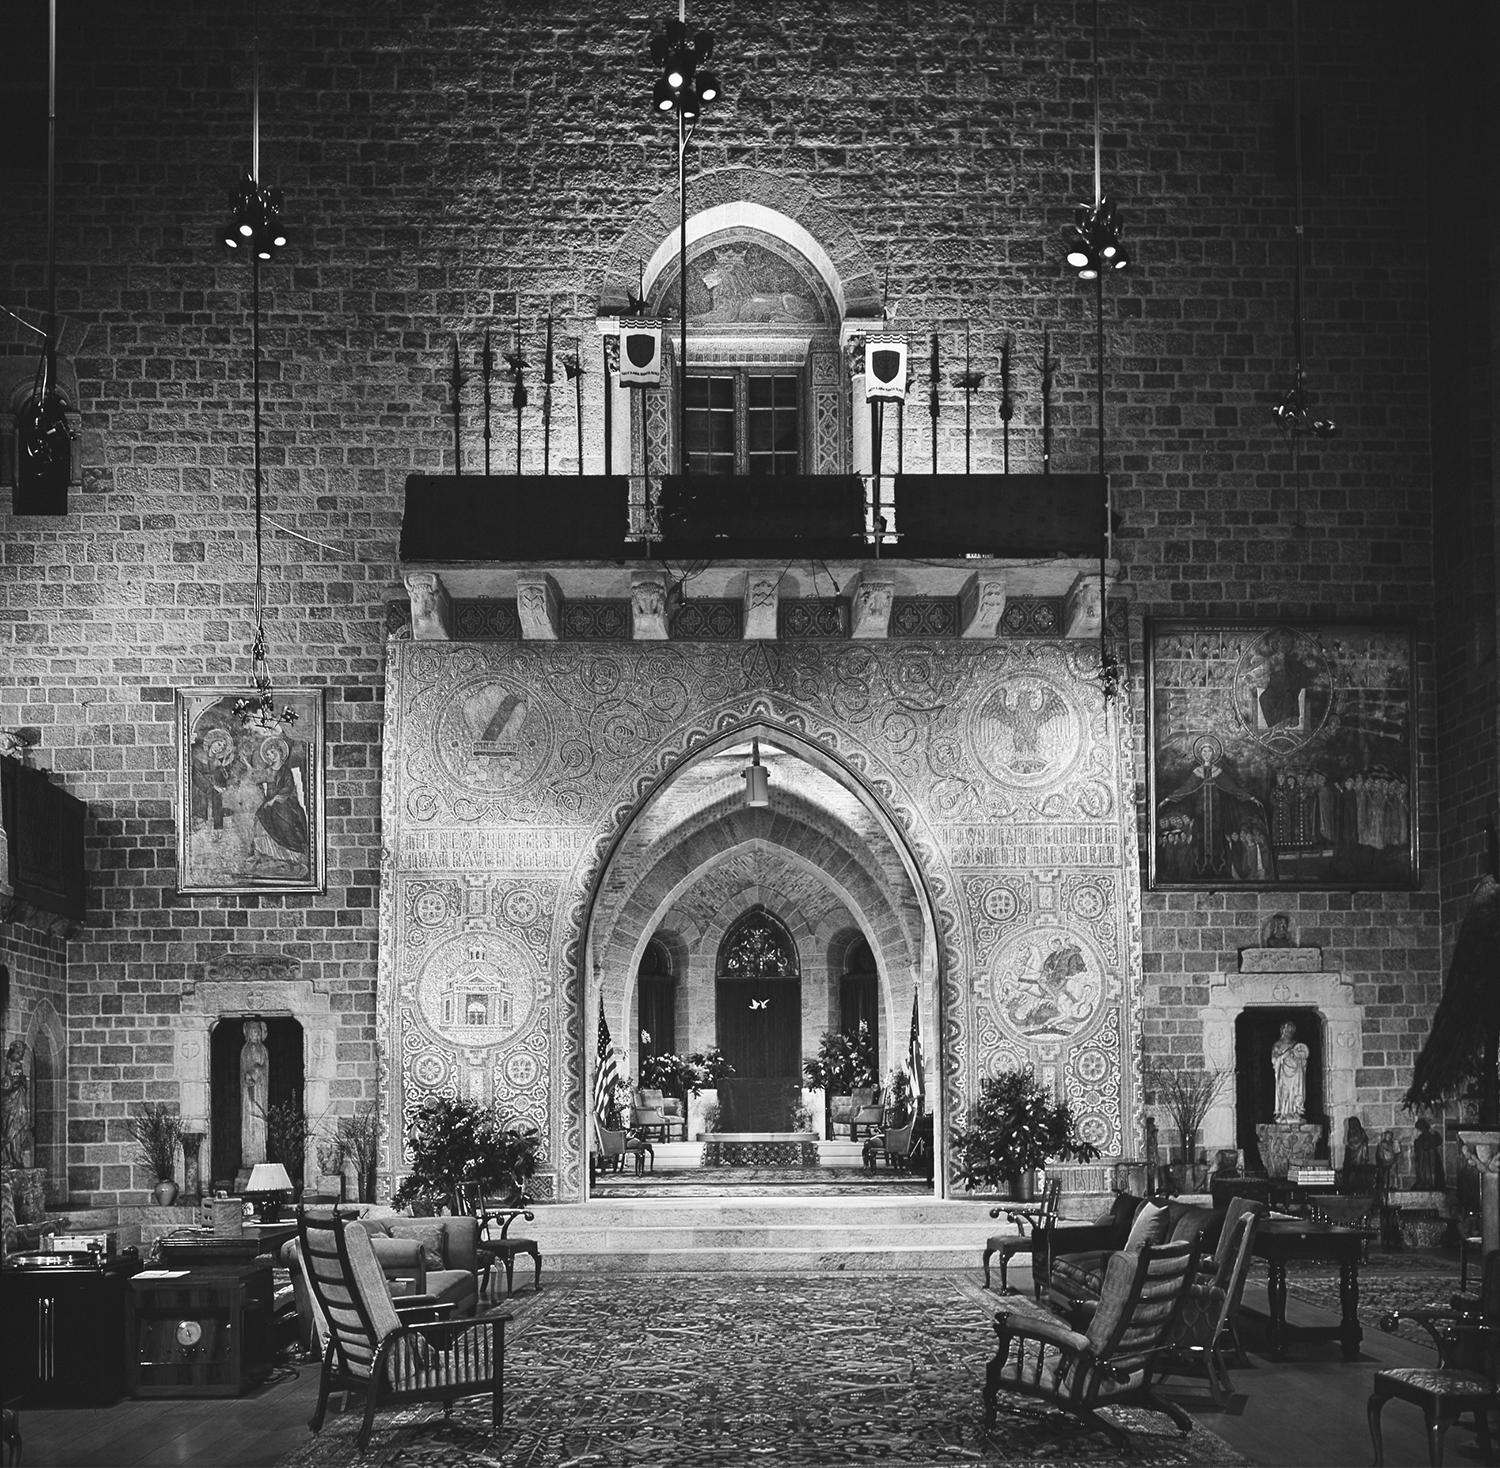 Figure 18: The Great Hall of Glencairn, with the large archway decorated with the Academy seal, sometimes served as a classroom. It was in this space that Raymond Pitcairn taught a series of music appreciation classes for college students. The room was equipped with a state-of-the-art sound system (lower left).